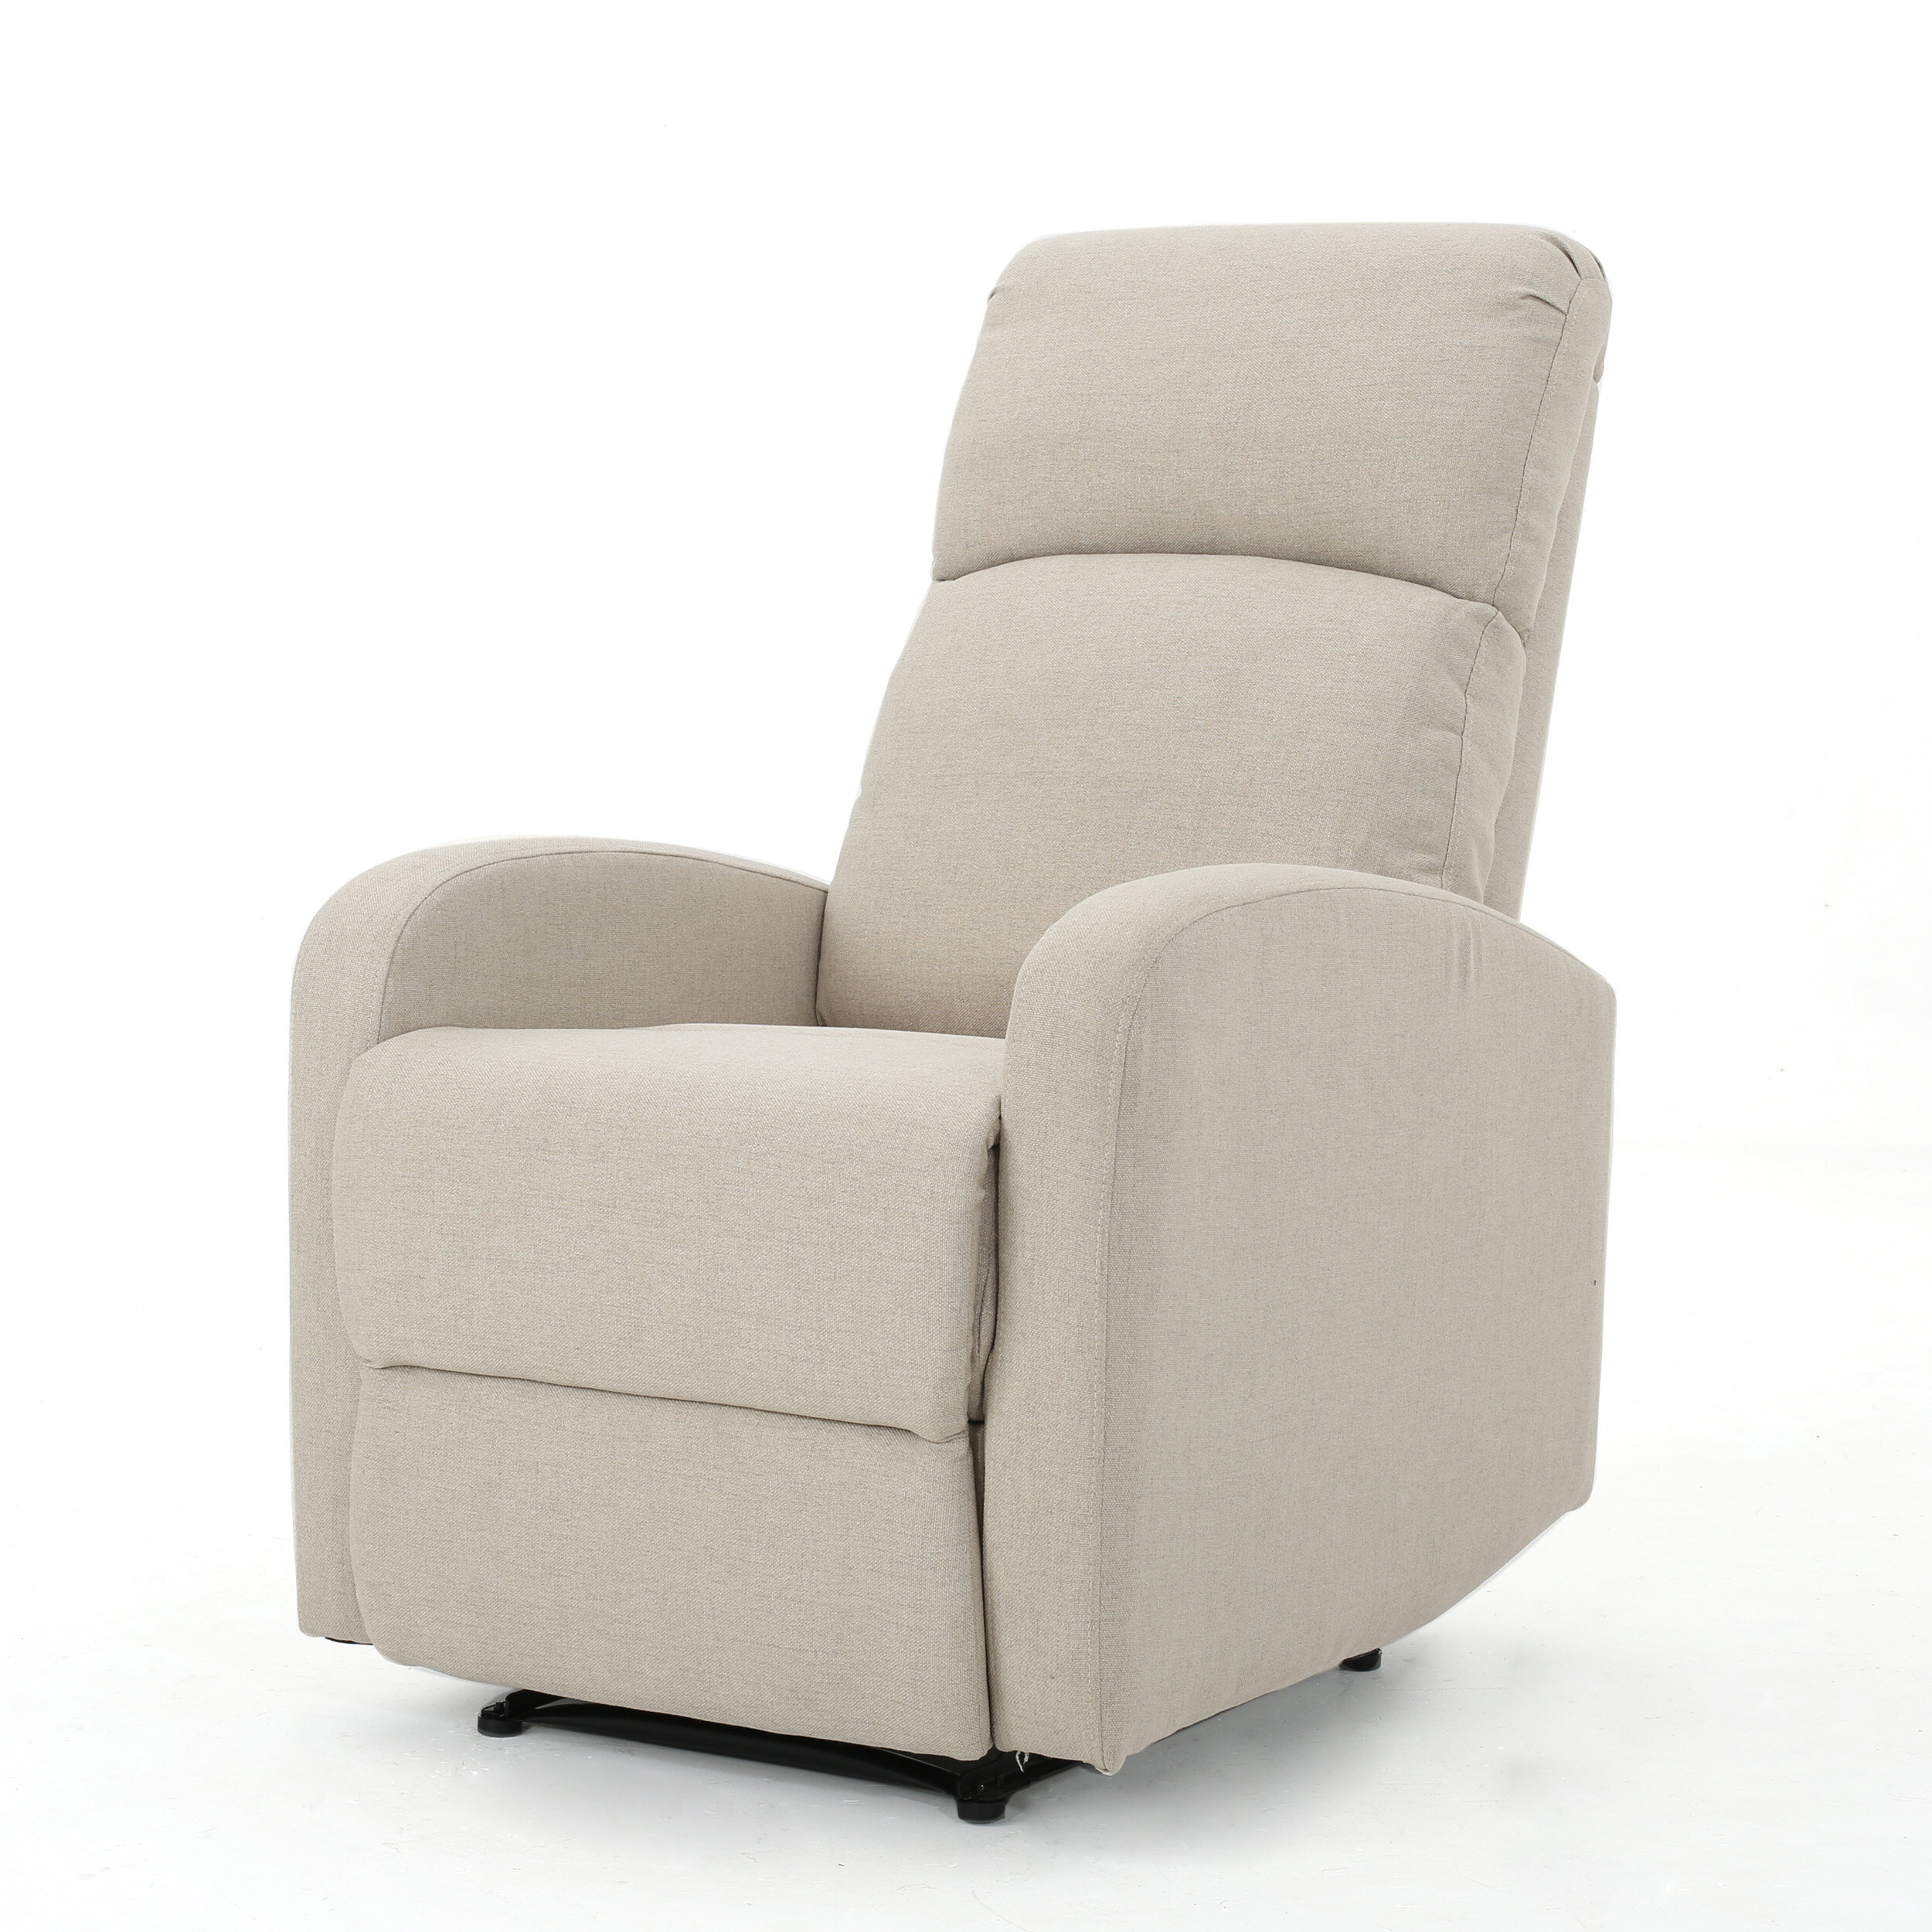 a chair ways bent to wikihow recliner arm step adjust